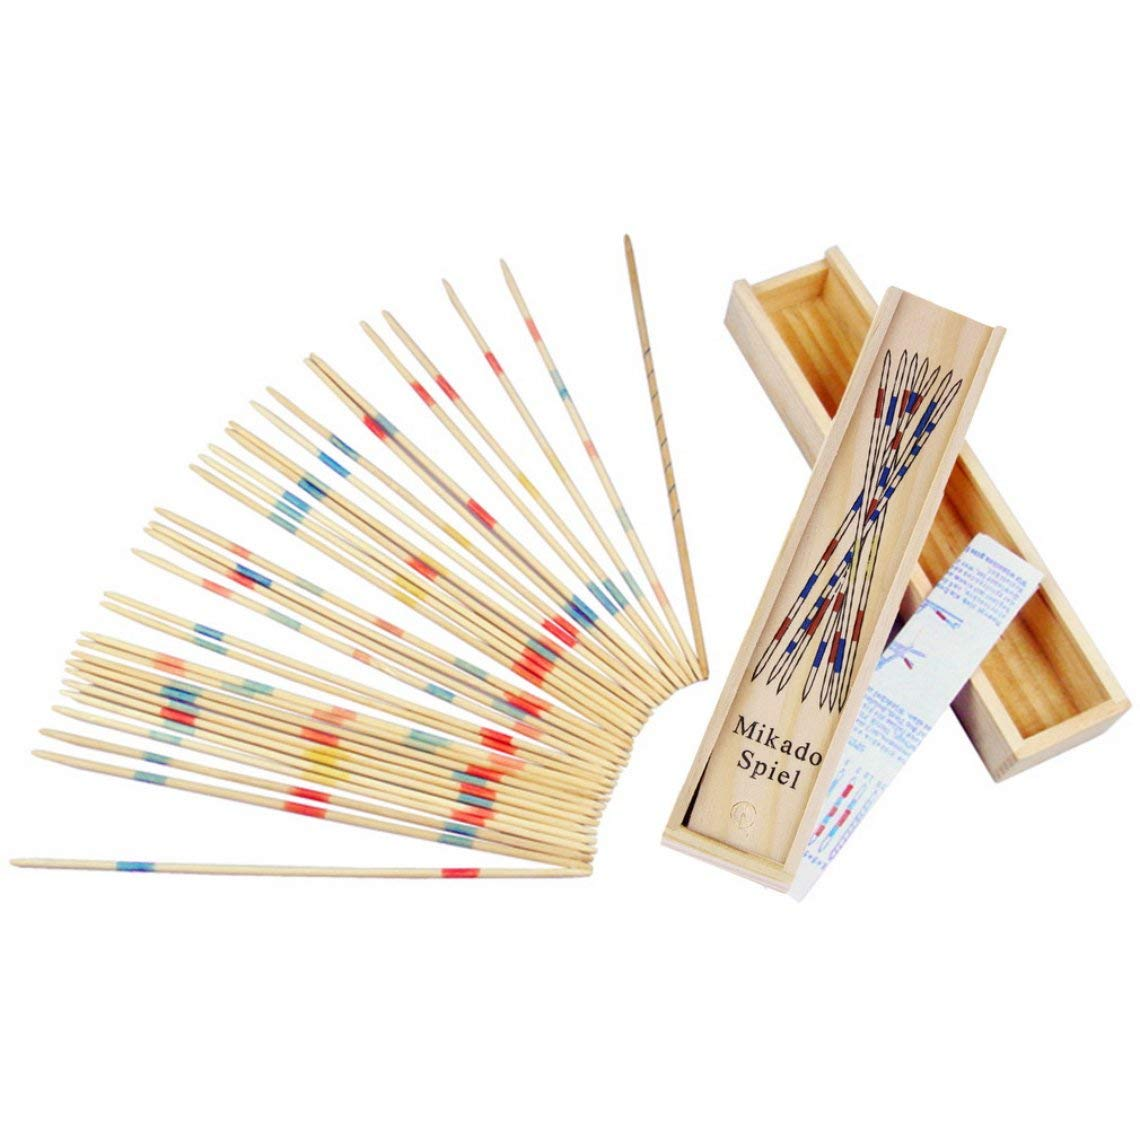 Zinniaya Baby Educational Wooden Traditional Mikado Spiel Pick Up Sticks Tool With Box Game Developing Math Ability